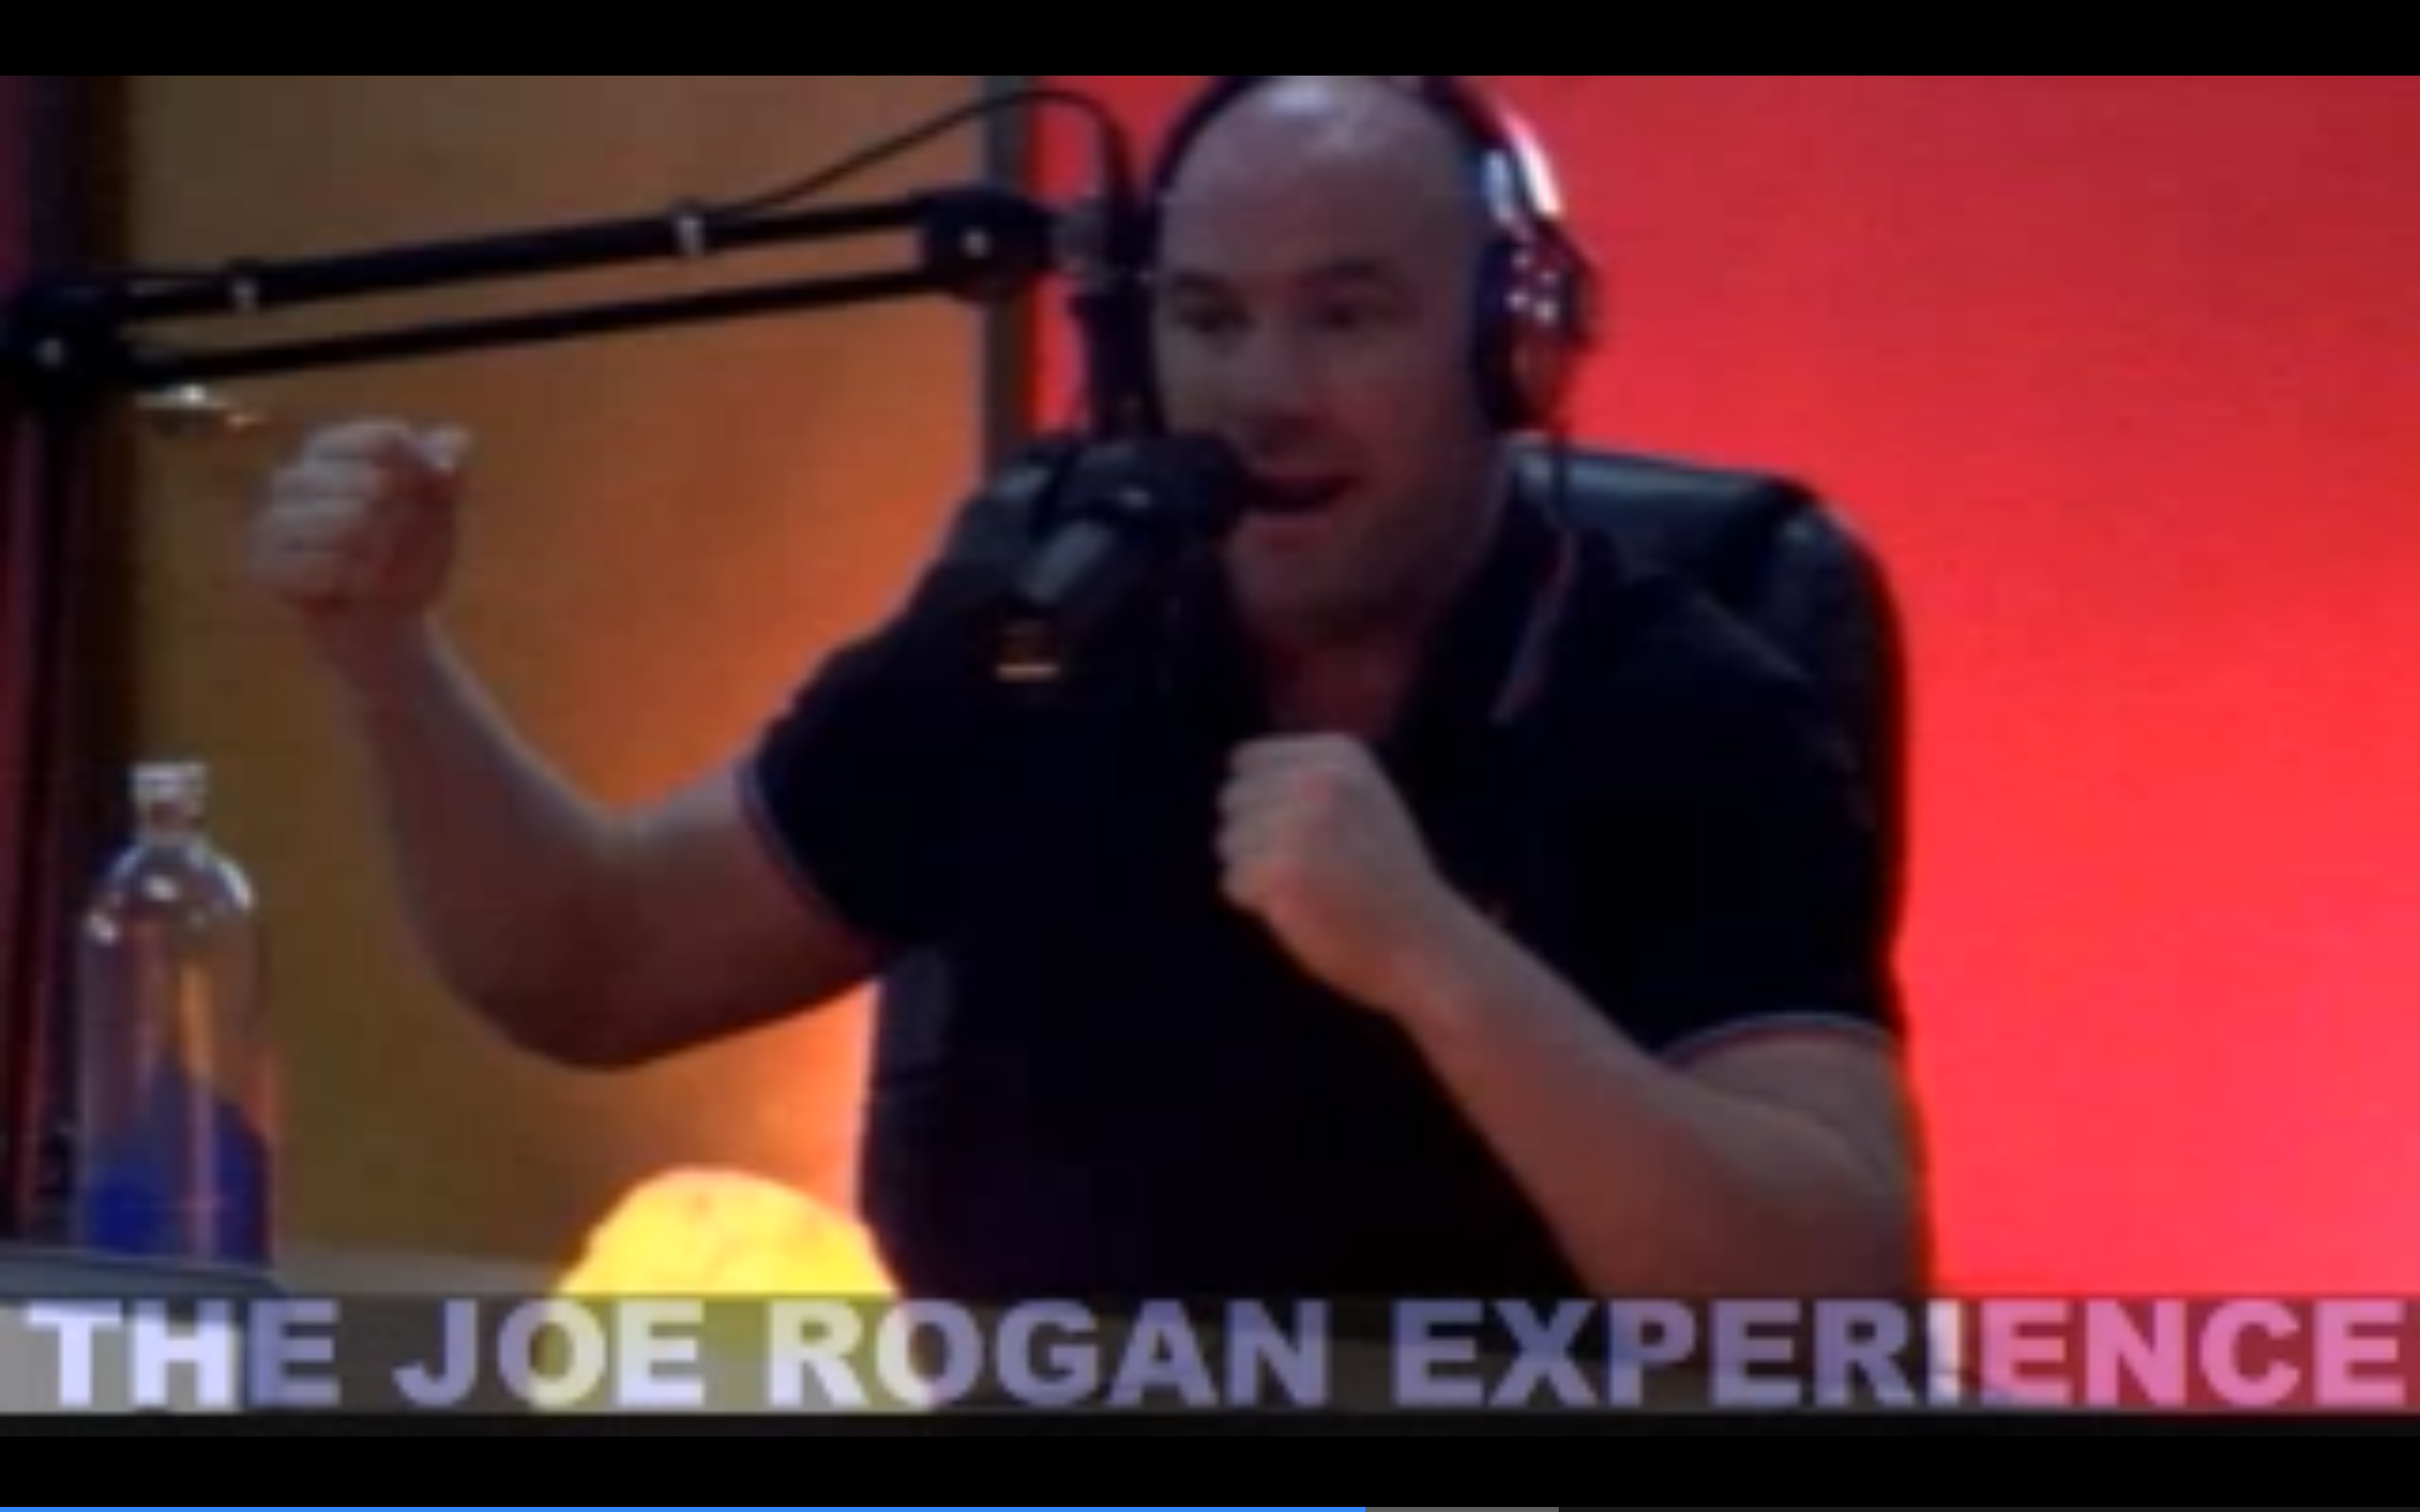 The Joe Rogan Experience #327 -Dana White